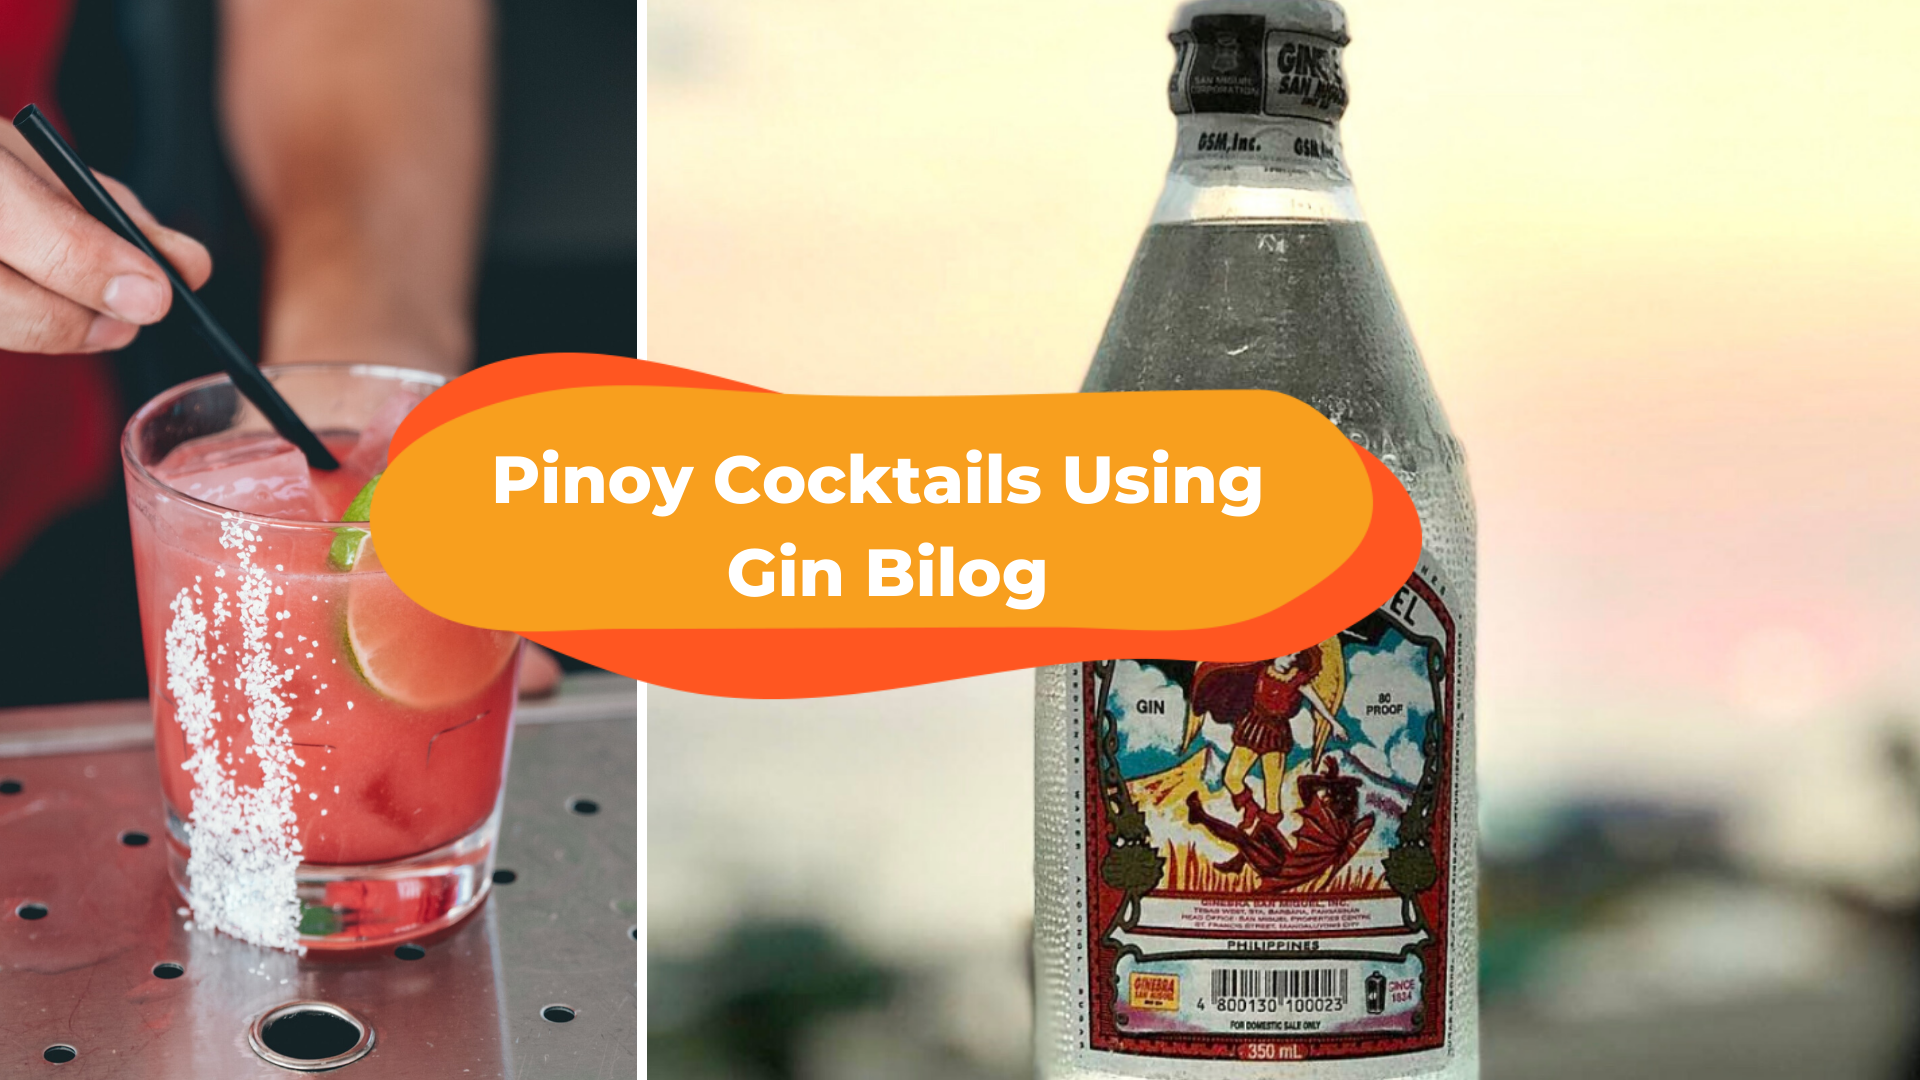 10 Pinoy Cocktail Recipes To Try With Gin Bilog Klook Travel Blog